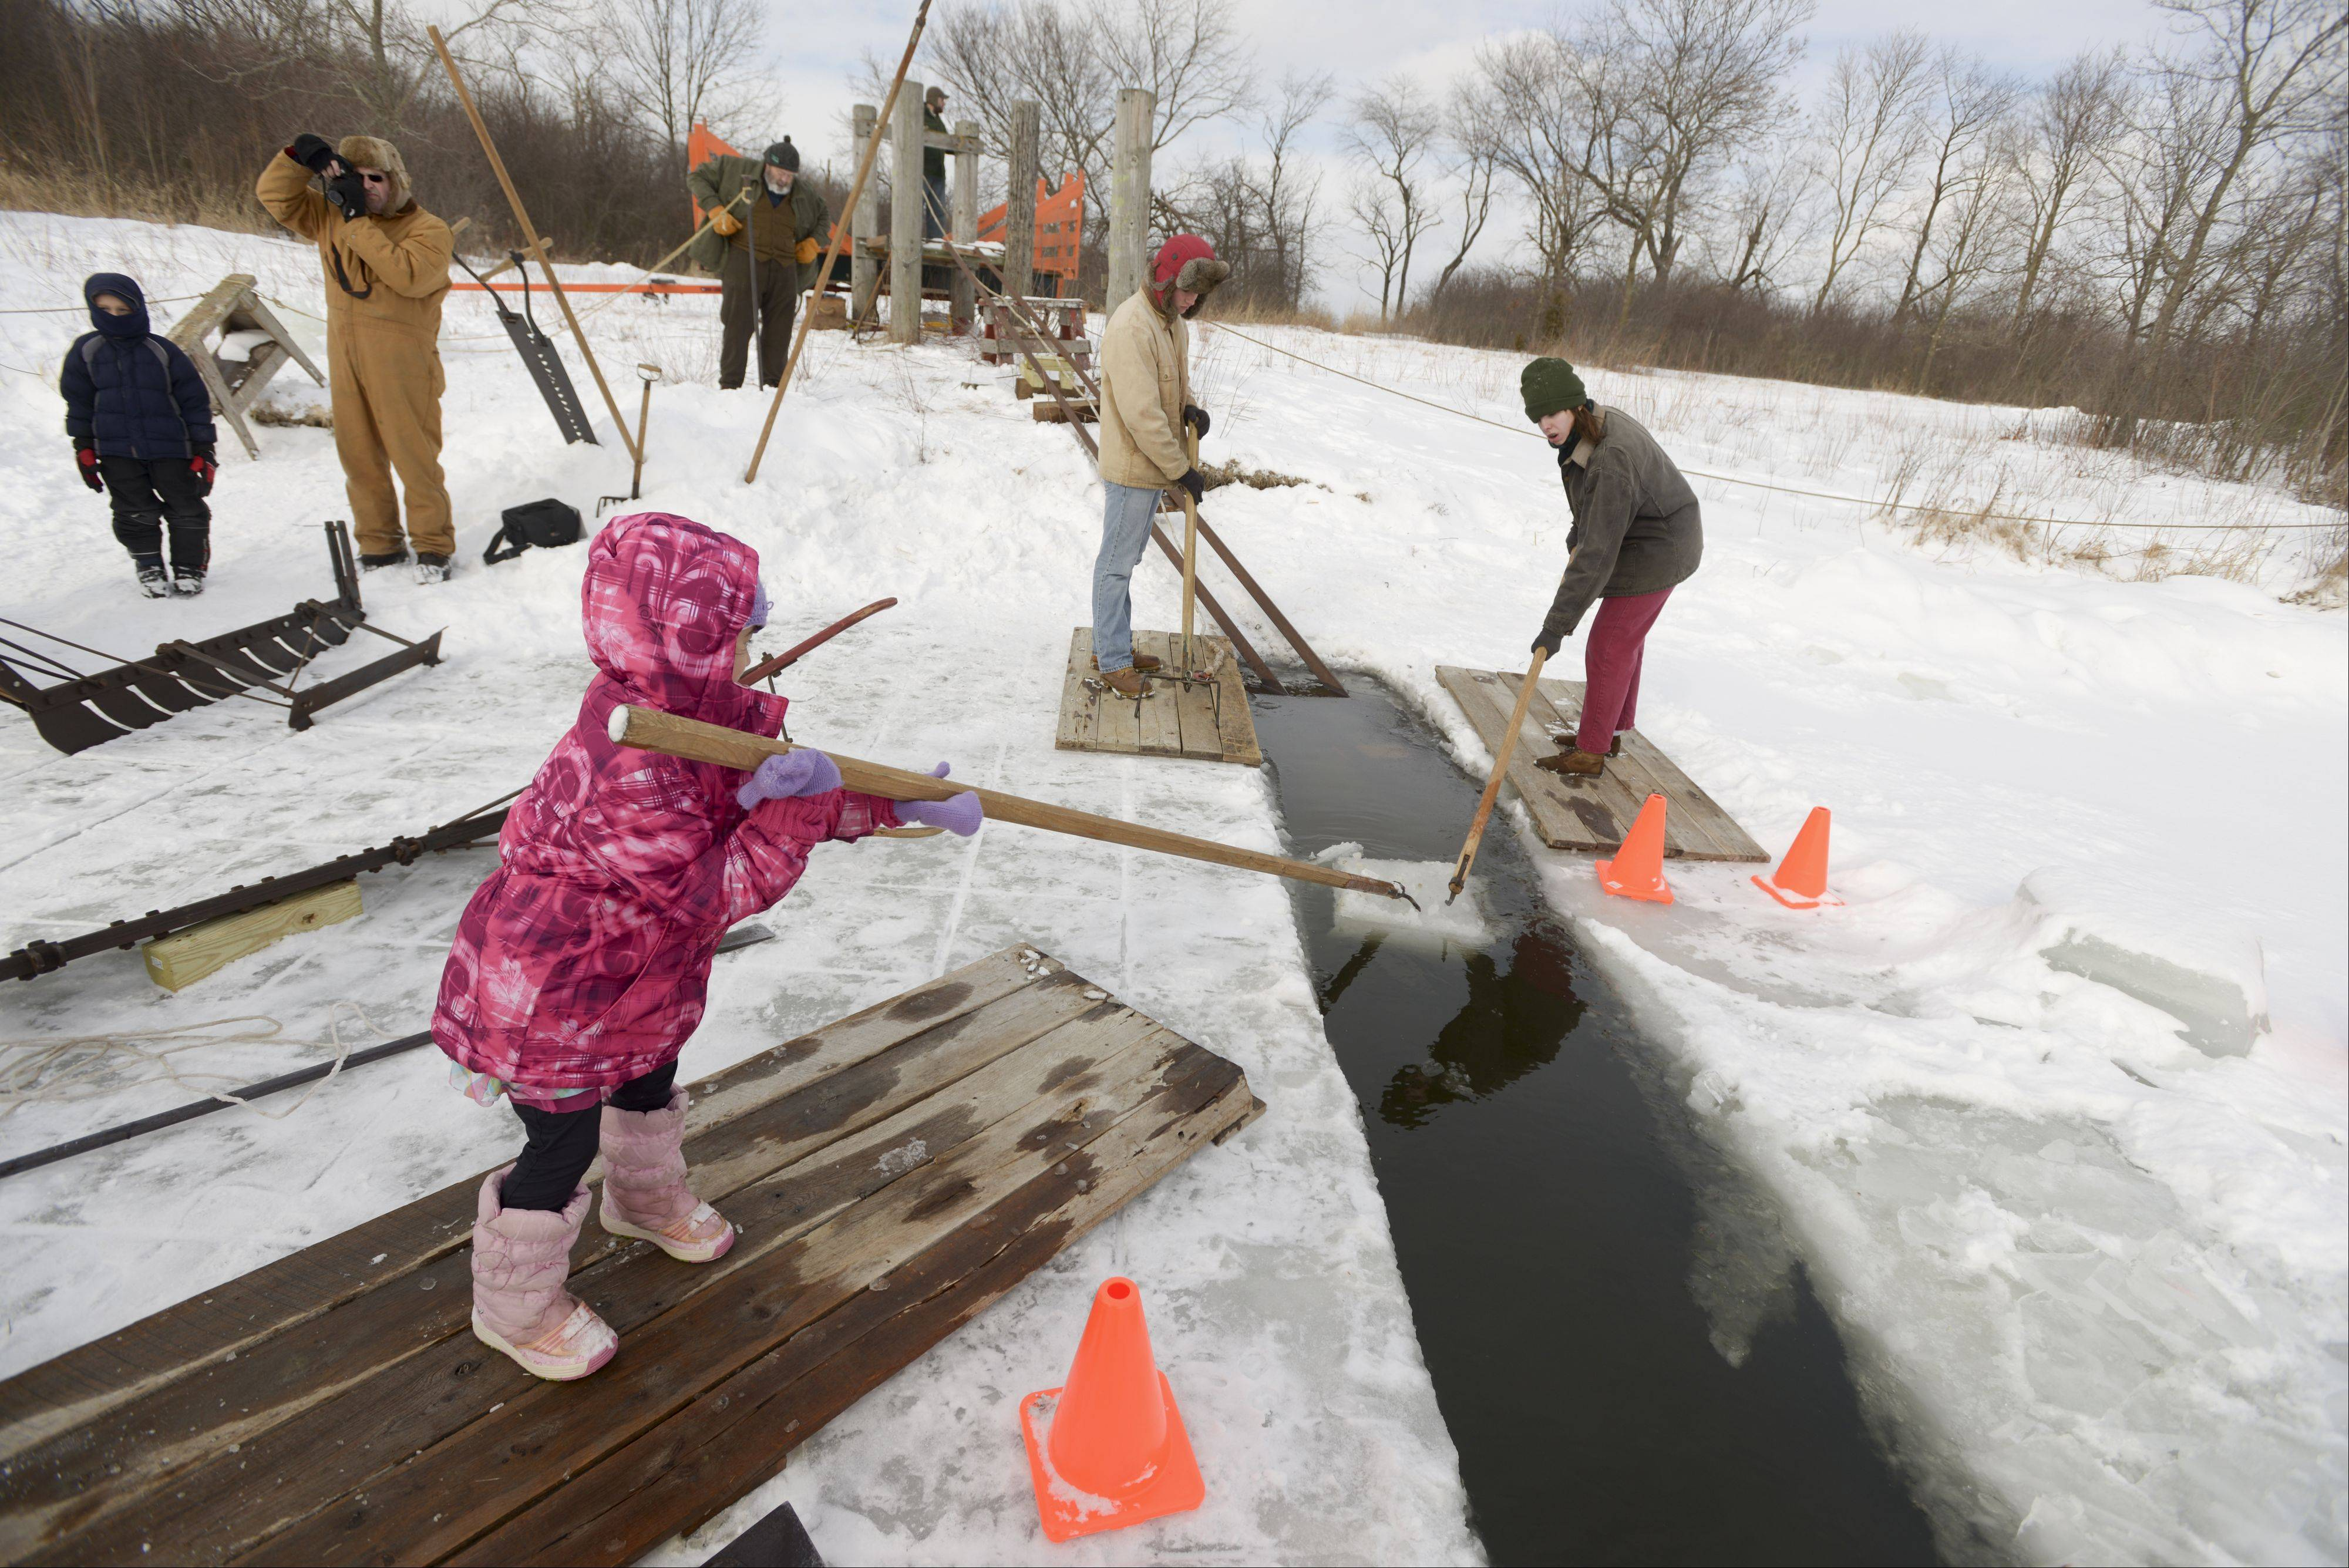 Maria Metoki, 4, of Hoffman Estates moves an ice block down toward shore the �old fashioned way� with a long pike at Kline Creek Farm�s Ice Harvesting event Sunday in West Chicago. The event showed visitors how ice was harvested and stored in the late 19th century.